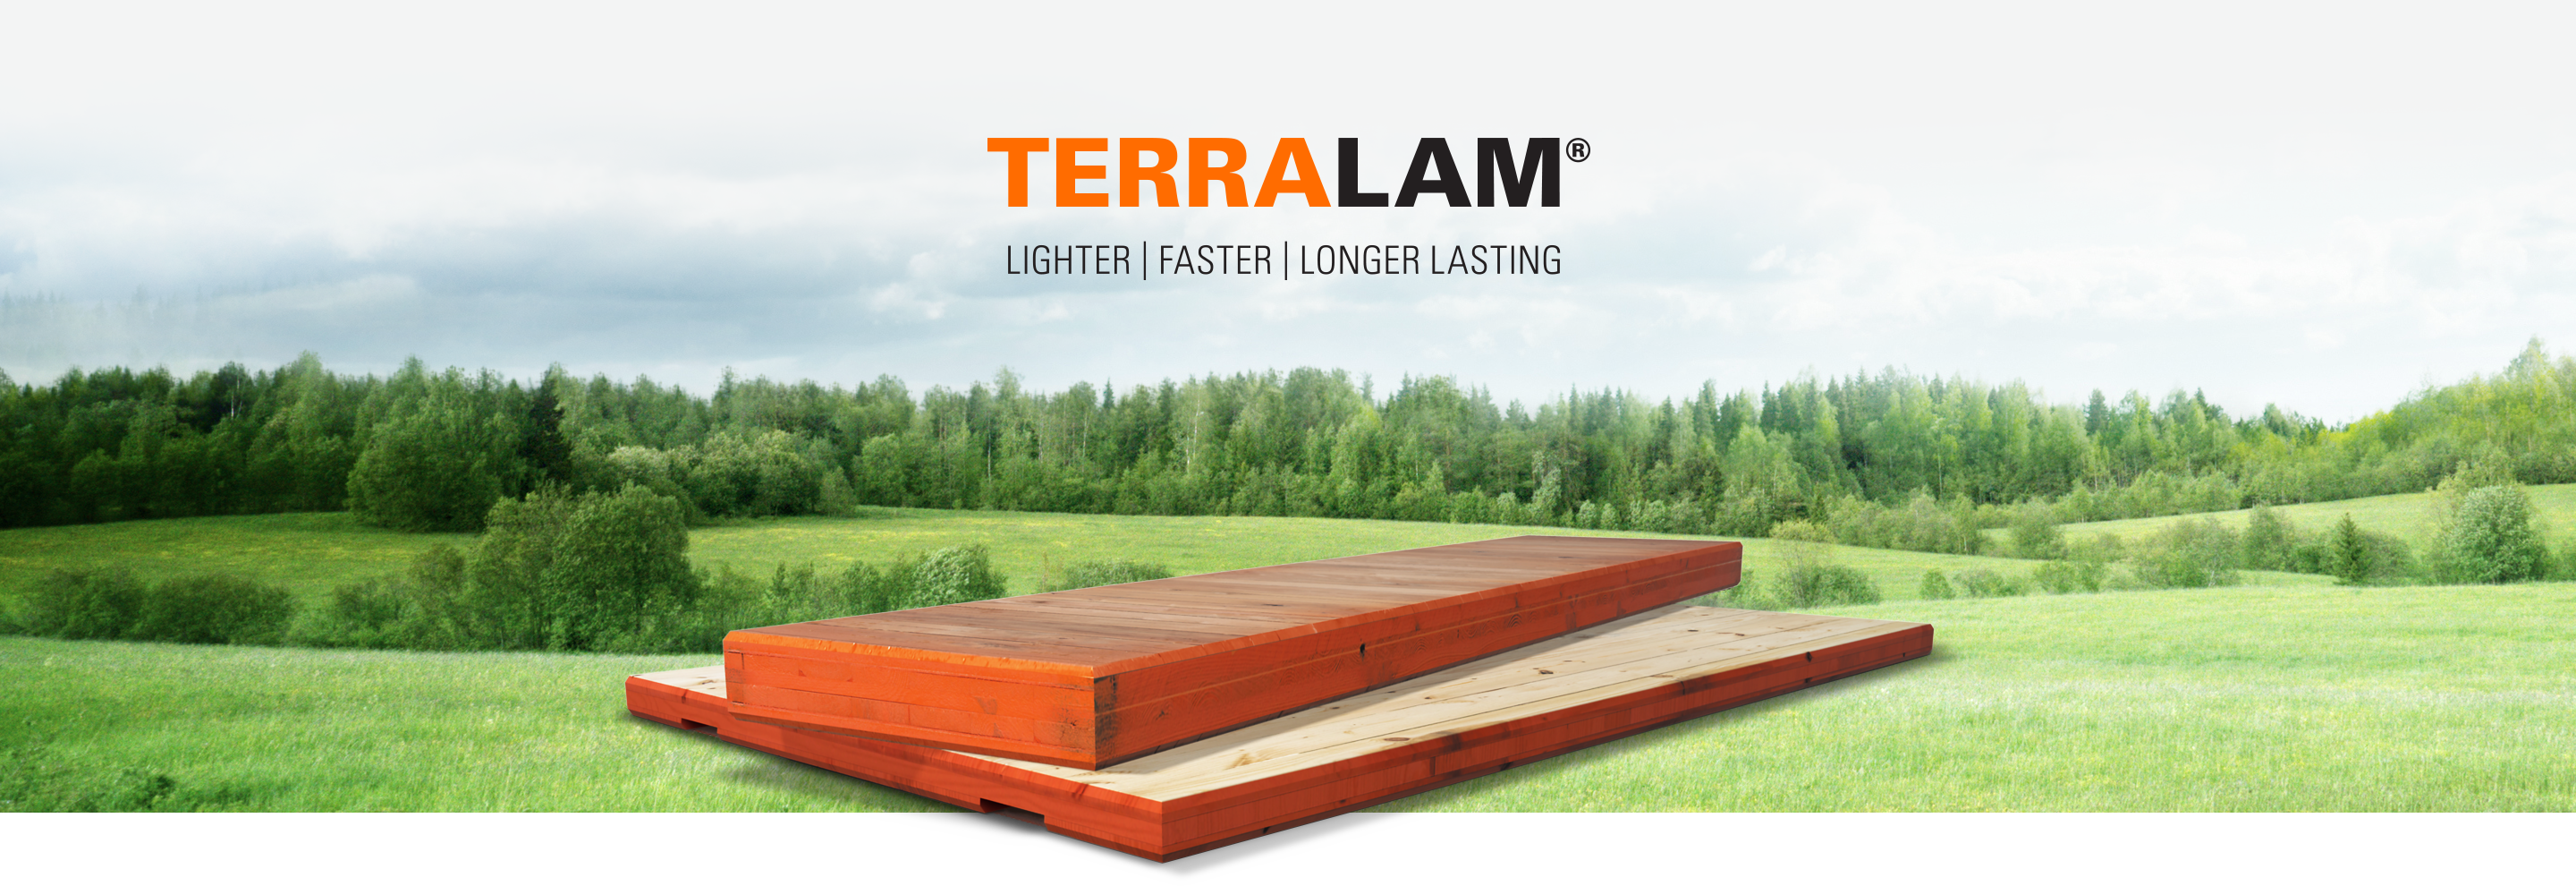 Innovative TerraLam® ground protection mats